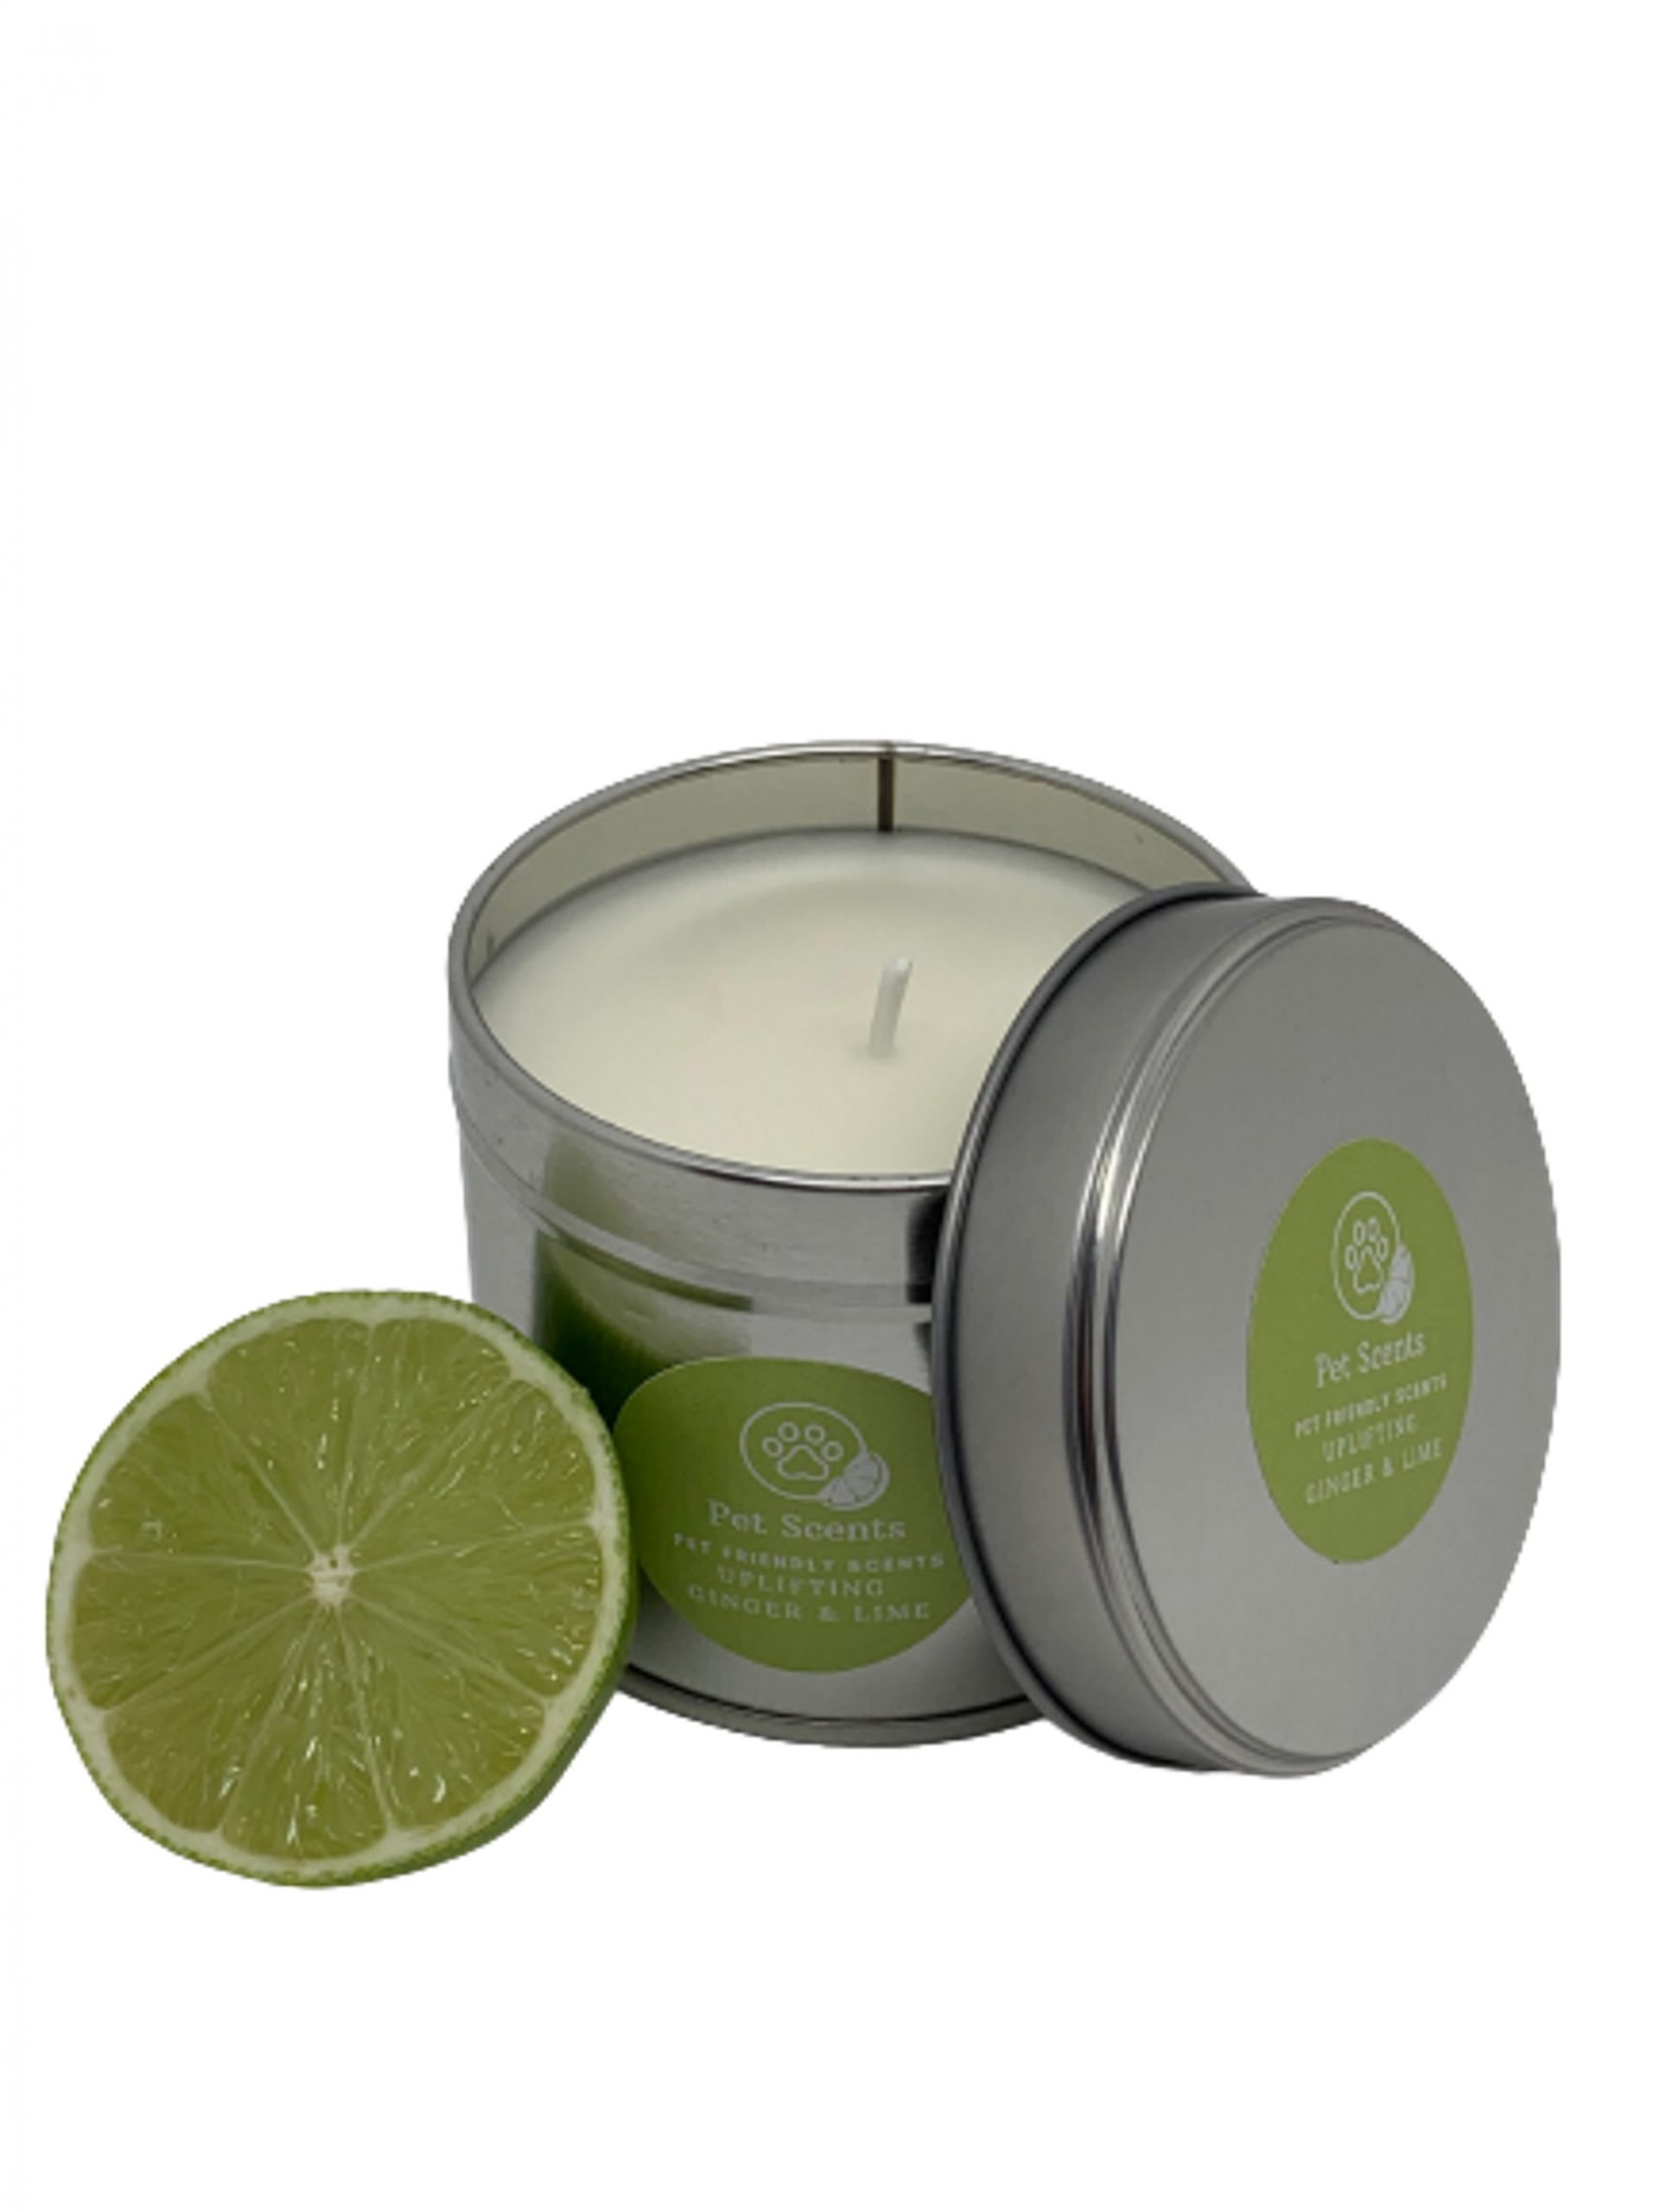 Pet Scents Ginger & Lime - Tin